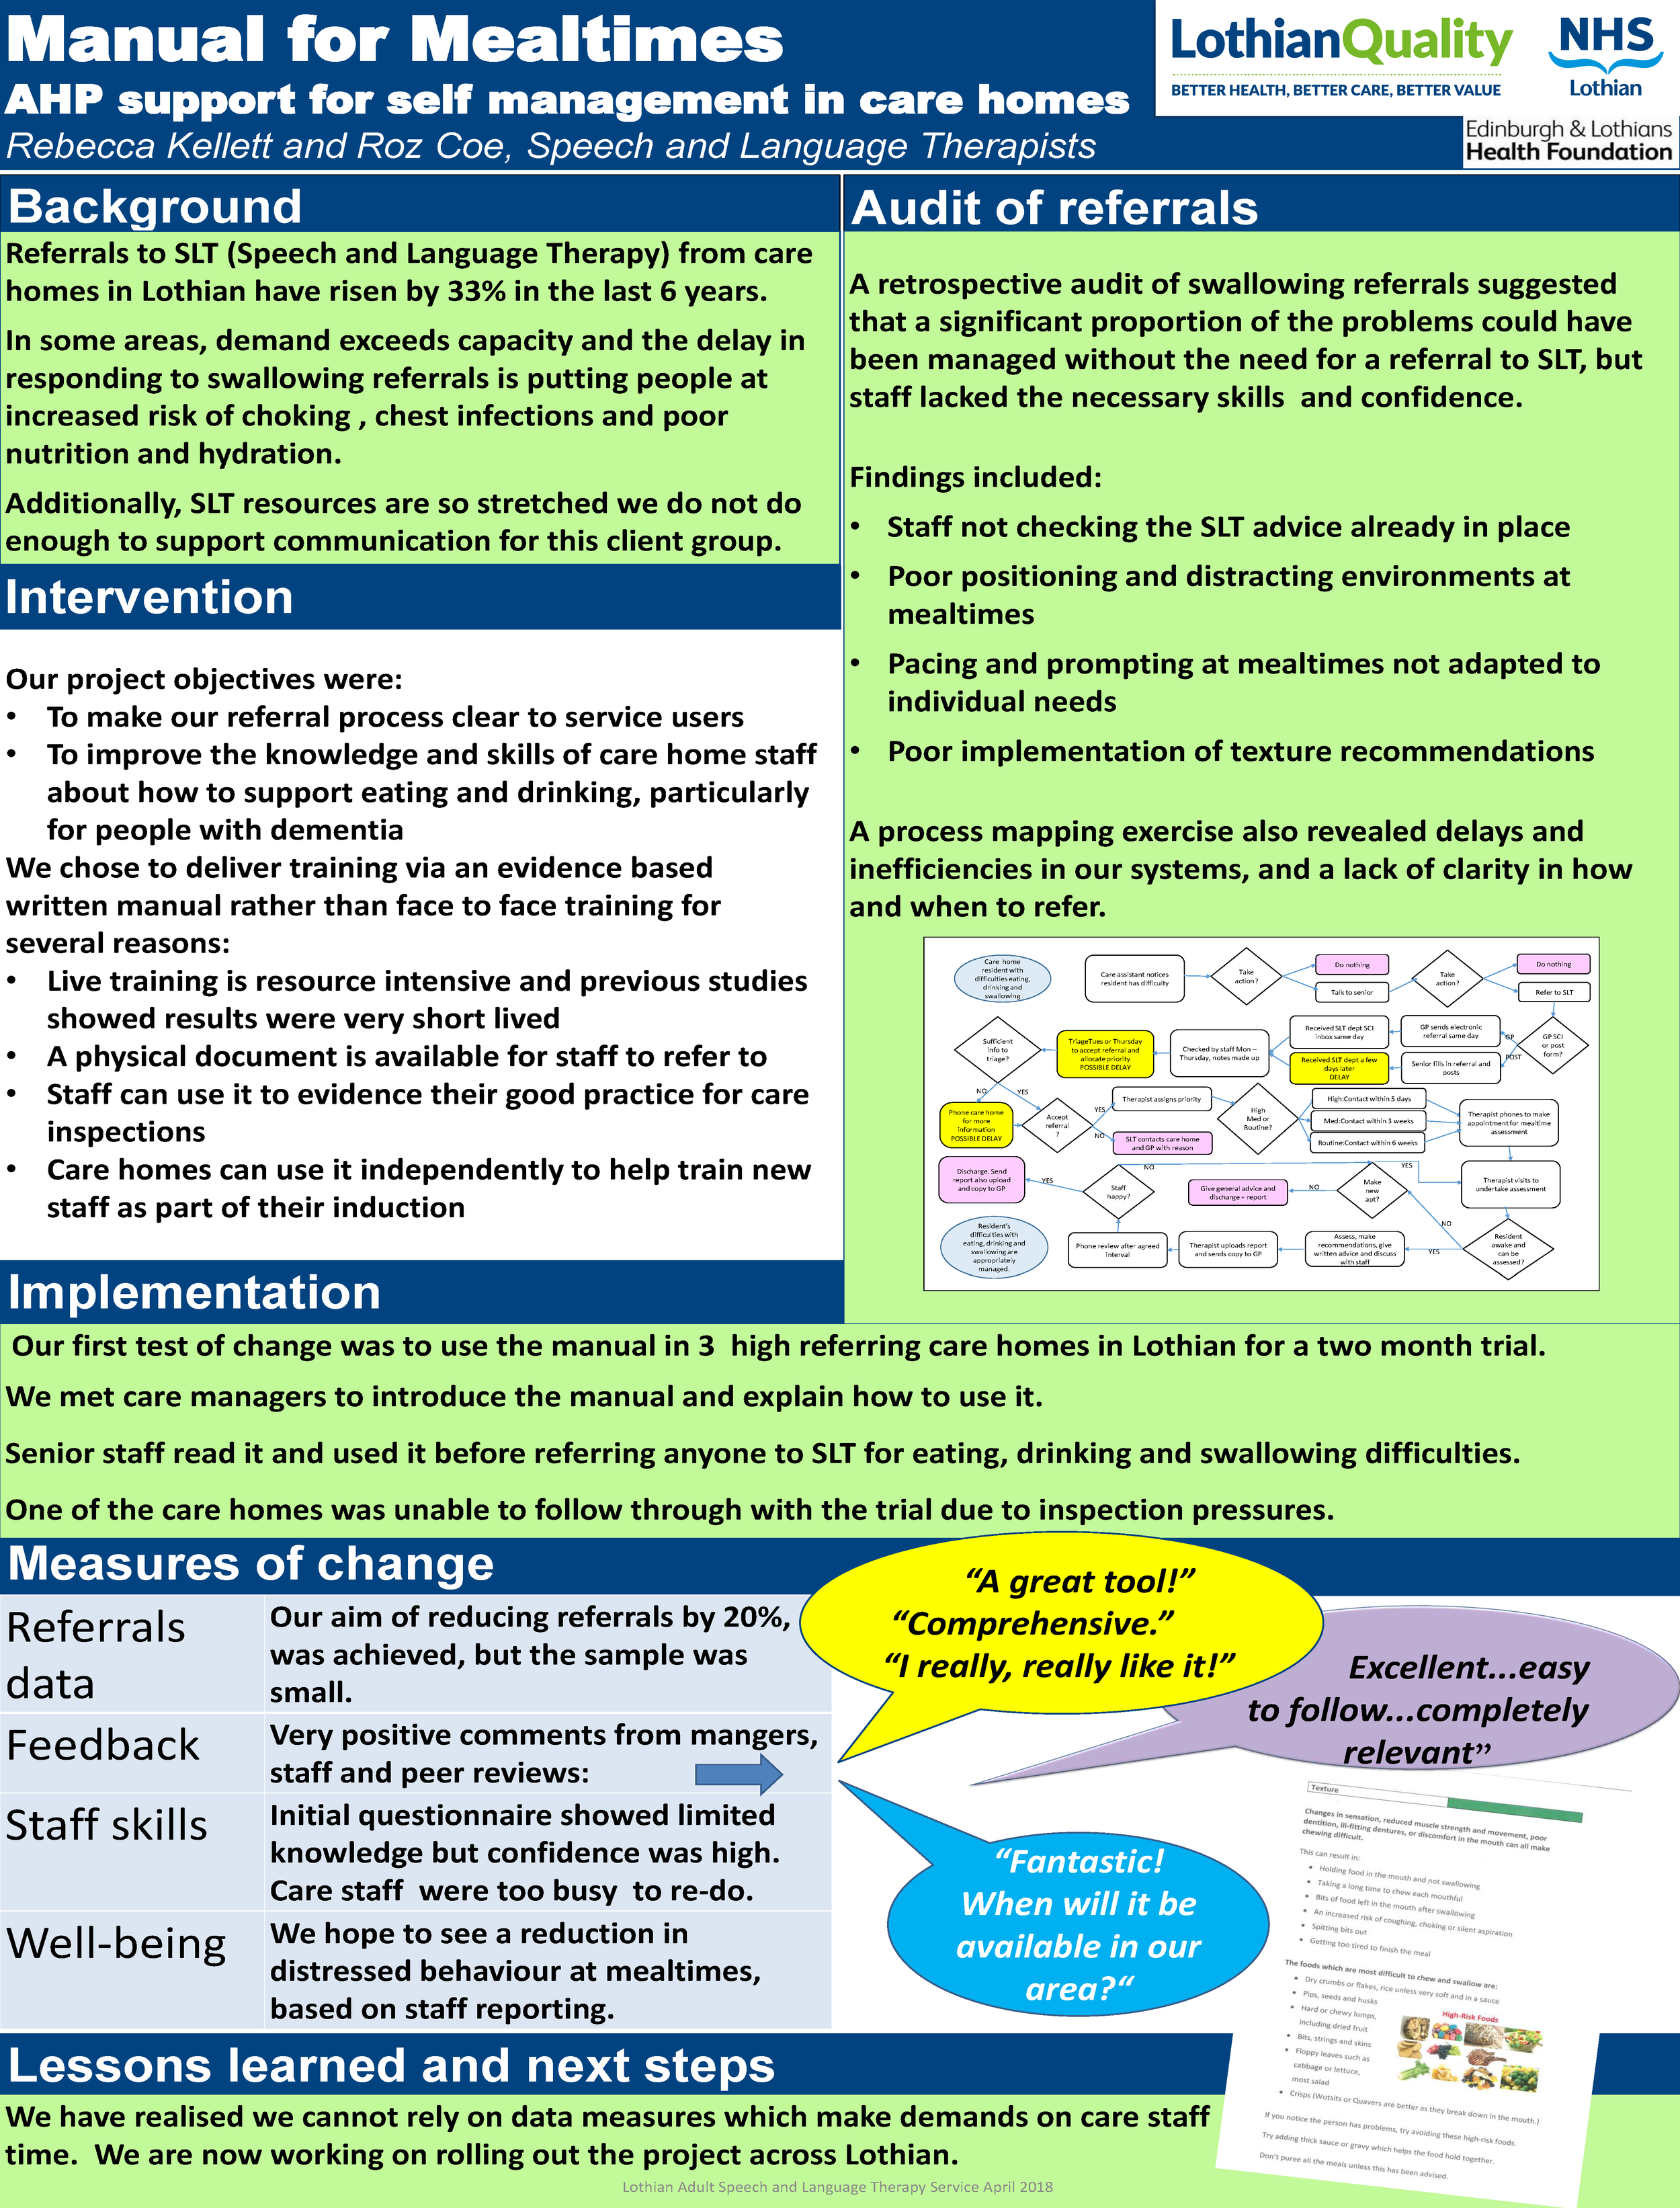 QIposter for care home project_Rebecca Kellett.png